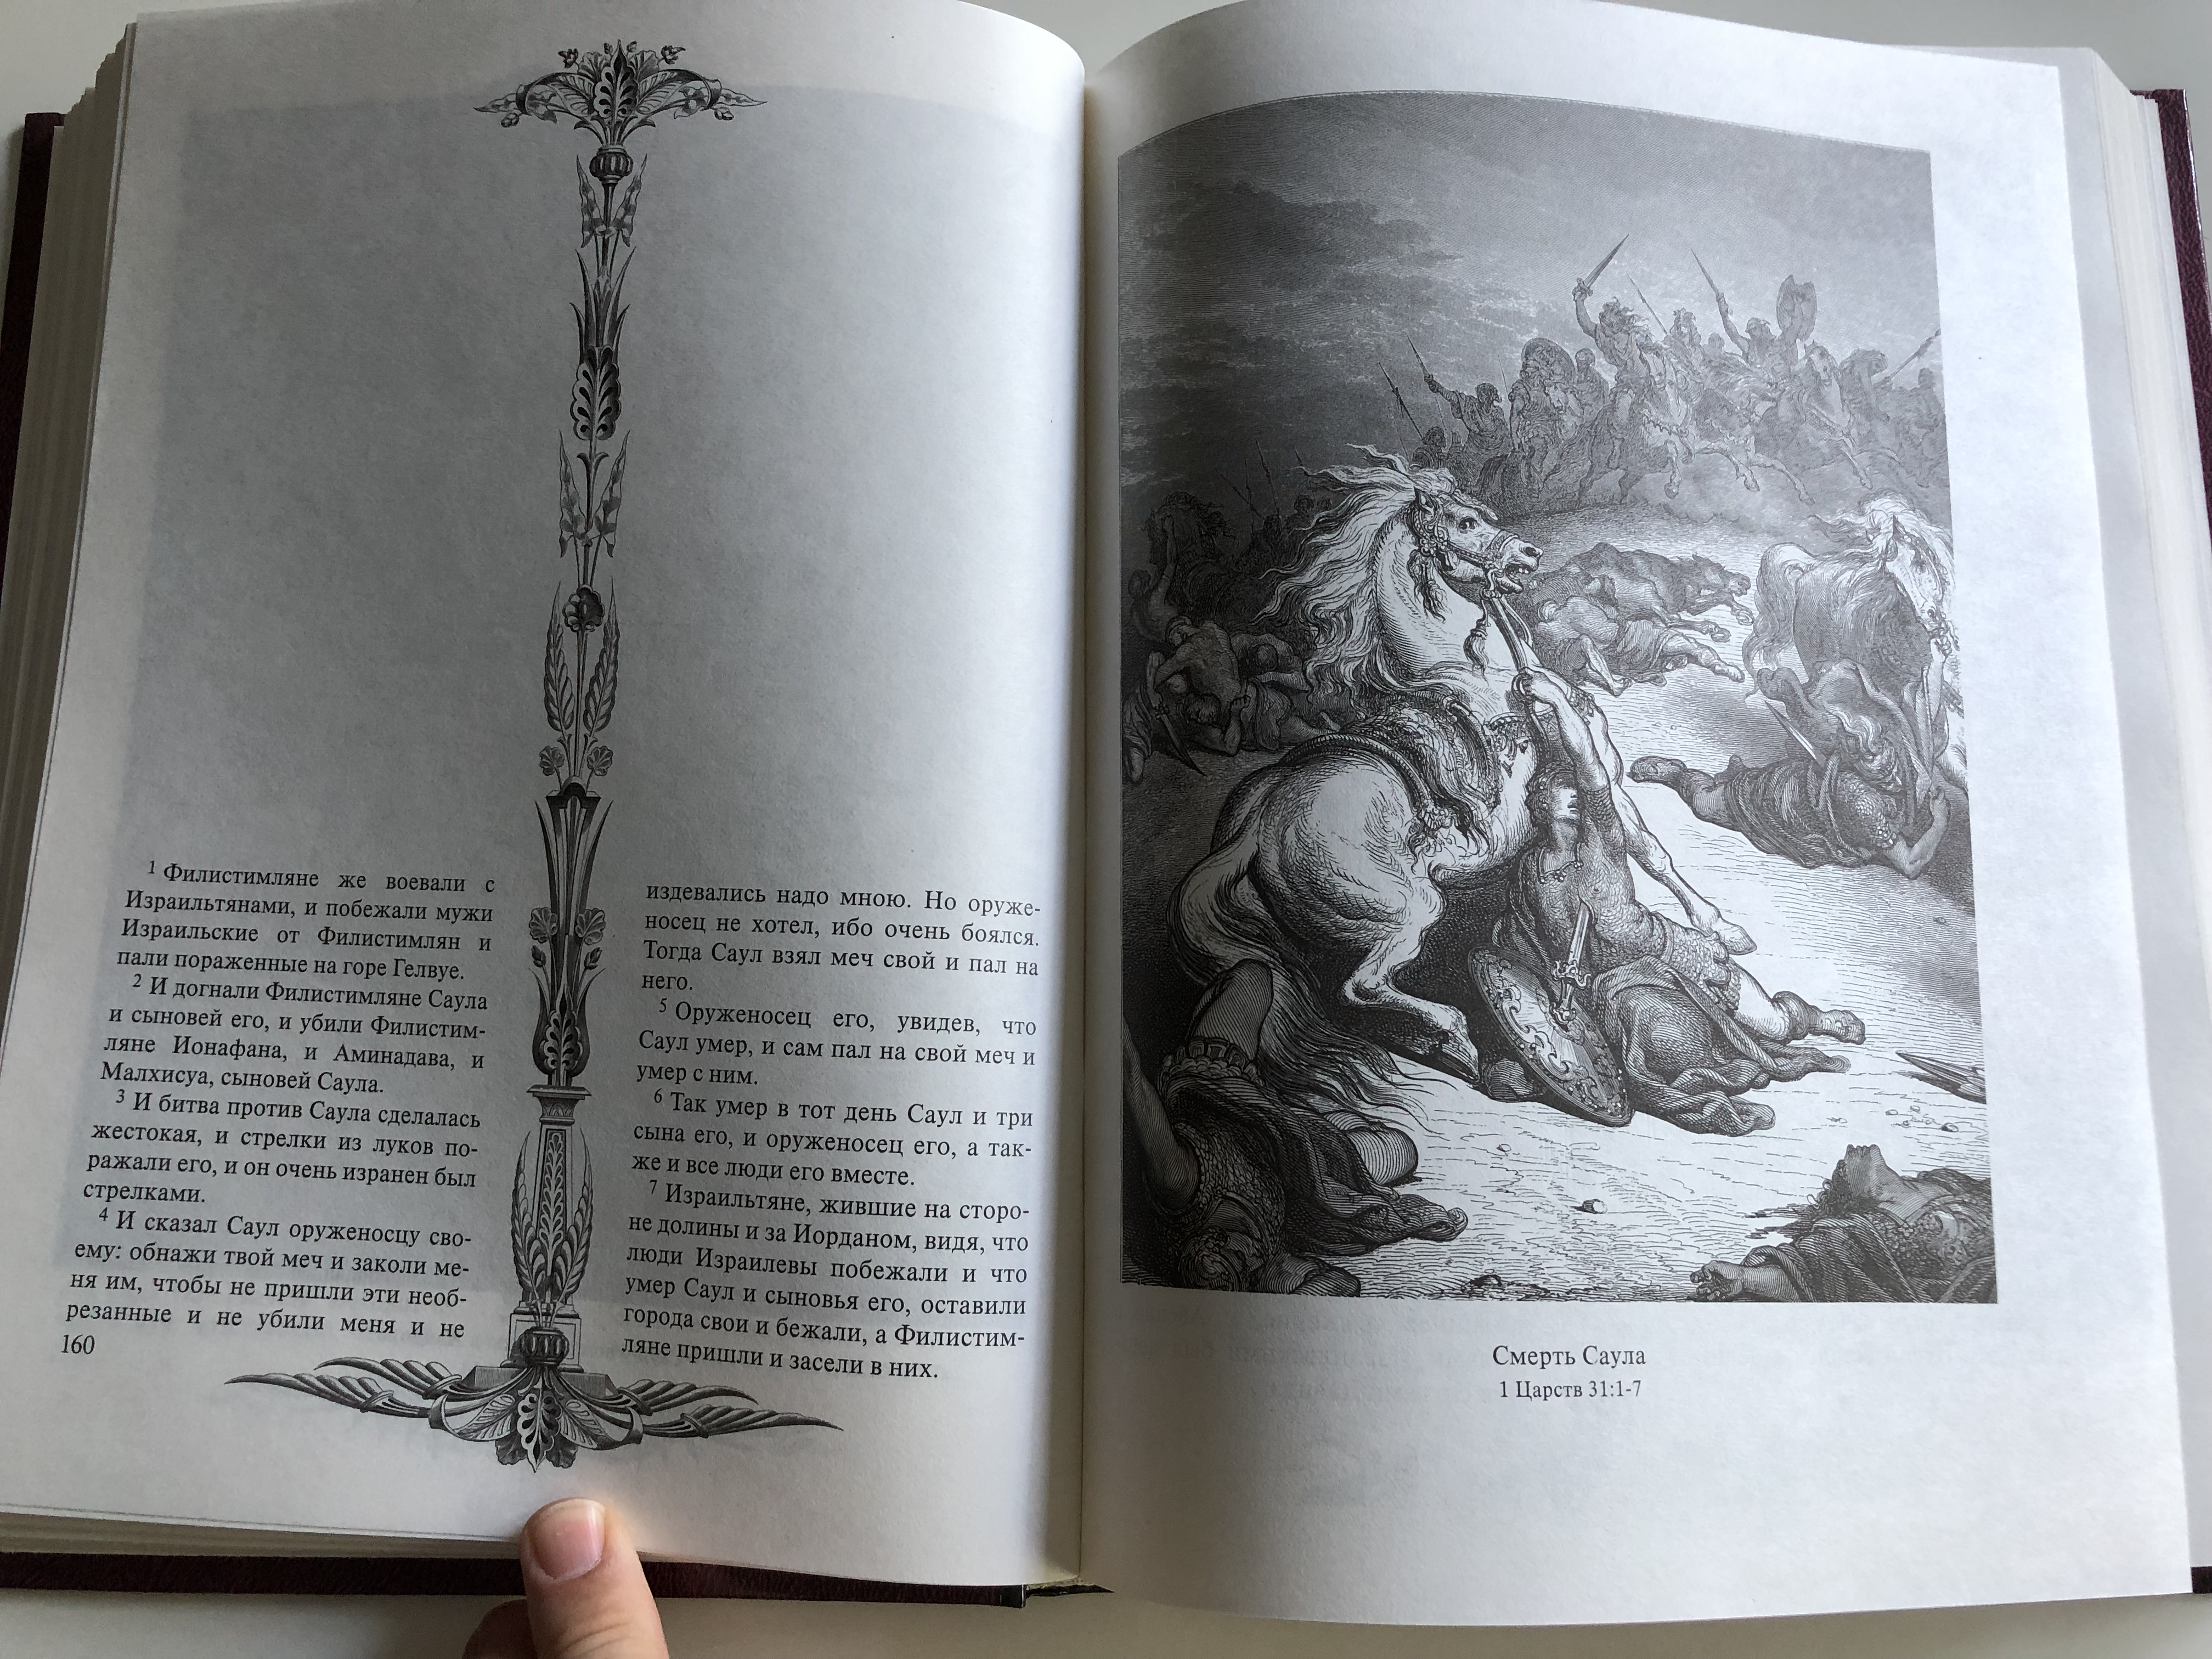 -russian-language-bible-with-gustav-dore-s-illustrations-with-bible-text-from-the-sinodal-translation-hardcover-1995-russian-bible-society-10-.jpg